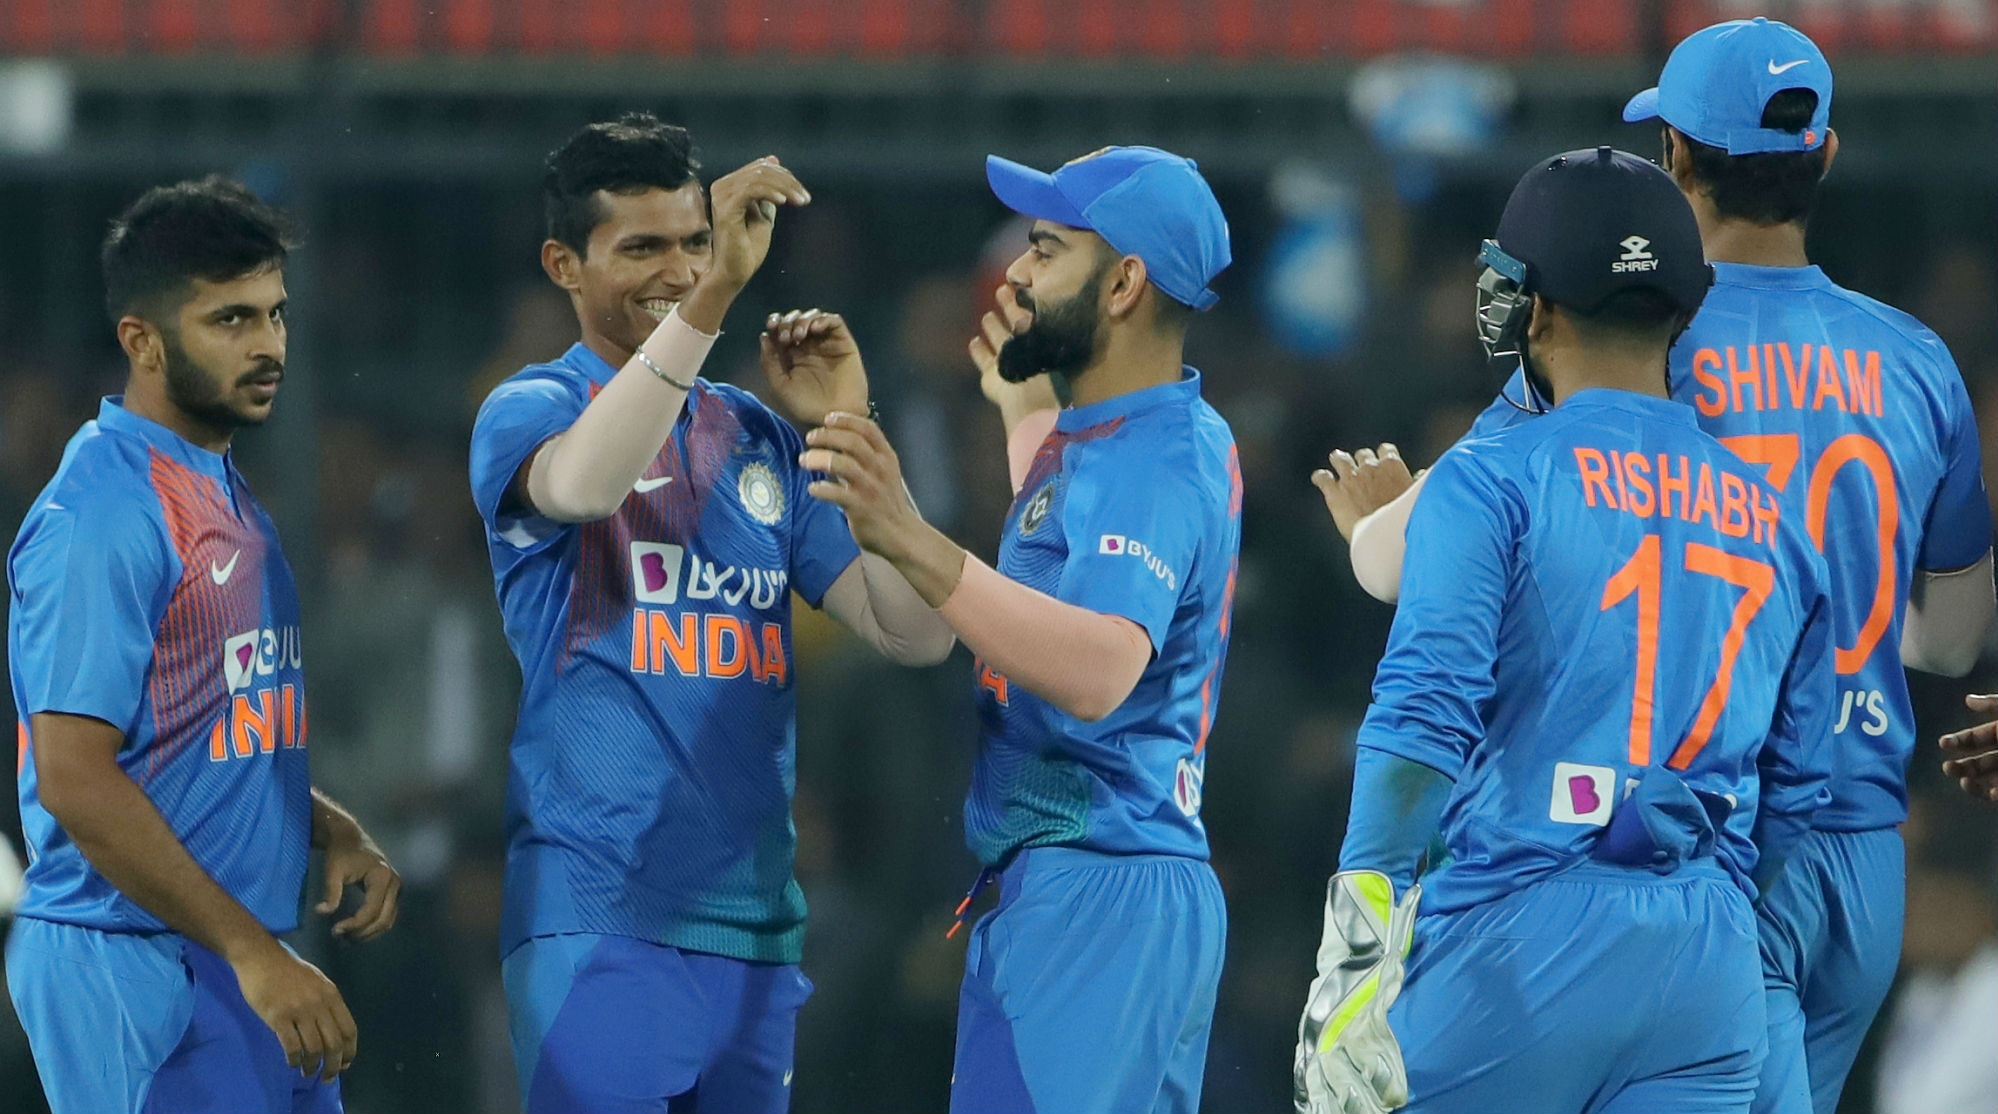 India vs Sri Lanka 2nd T20I 2020 Match Result: Jasprit Bumrah, Shikhar Dhawan Return as Hosts Beat Visitors by Seven Wickets to Take 1–0 Lead